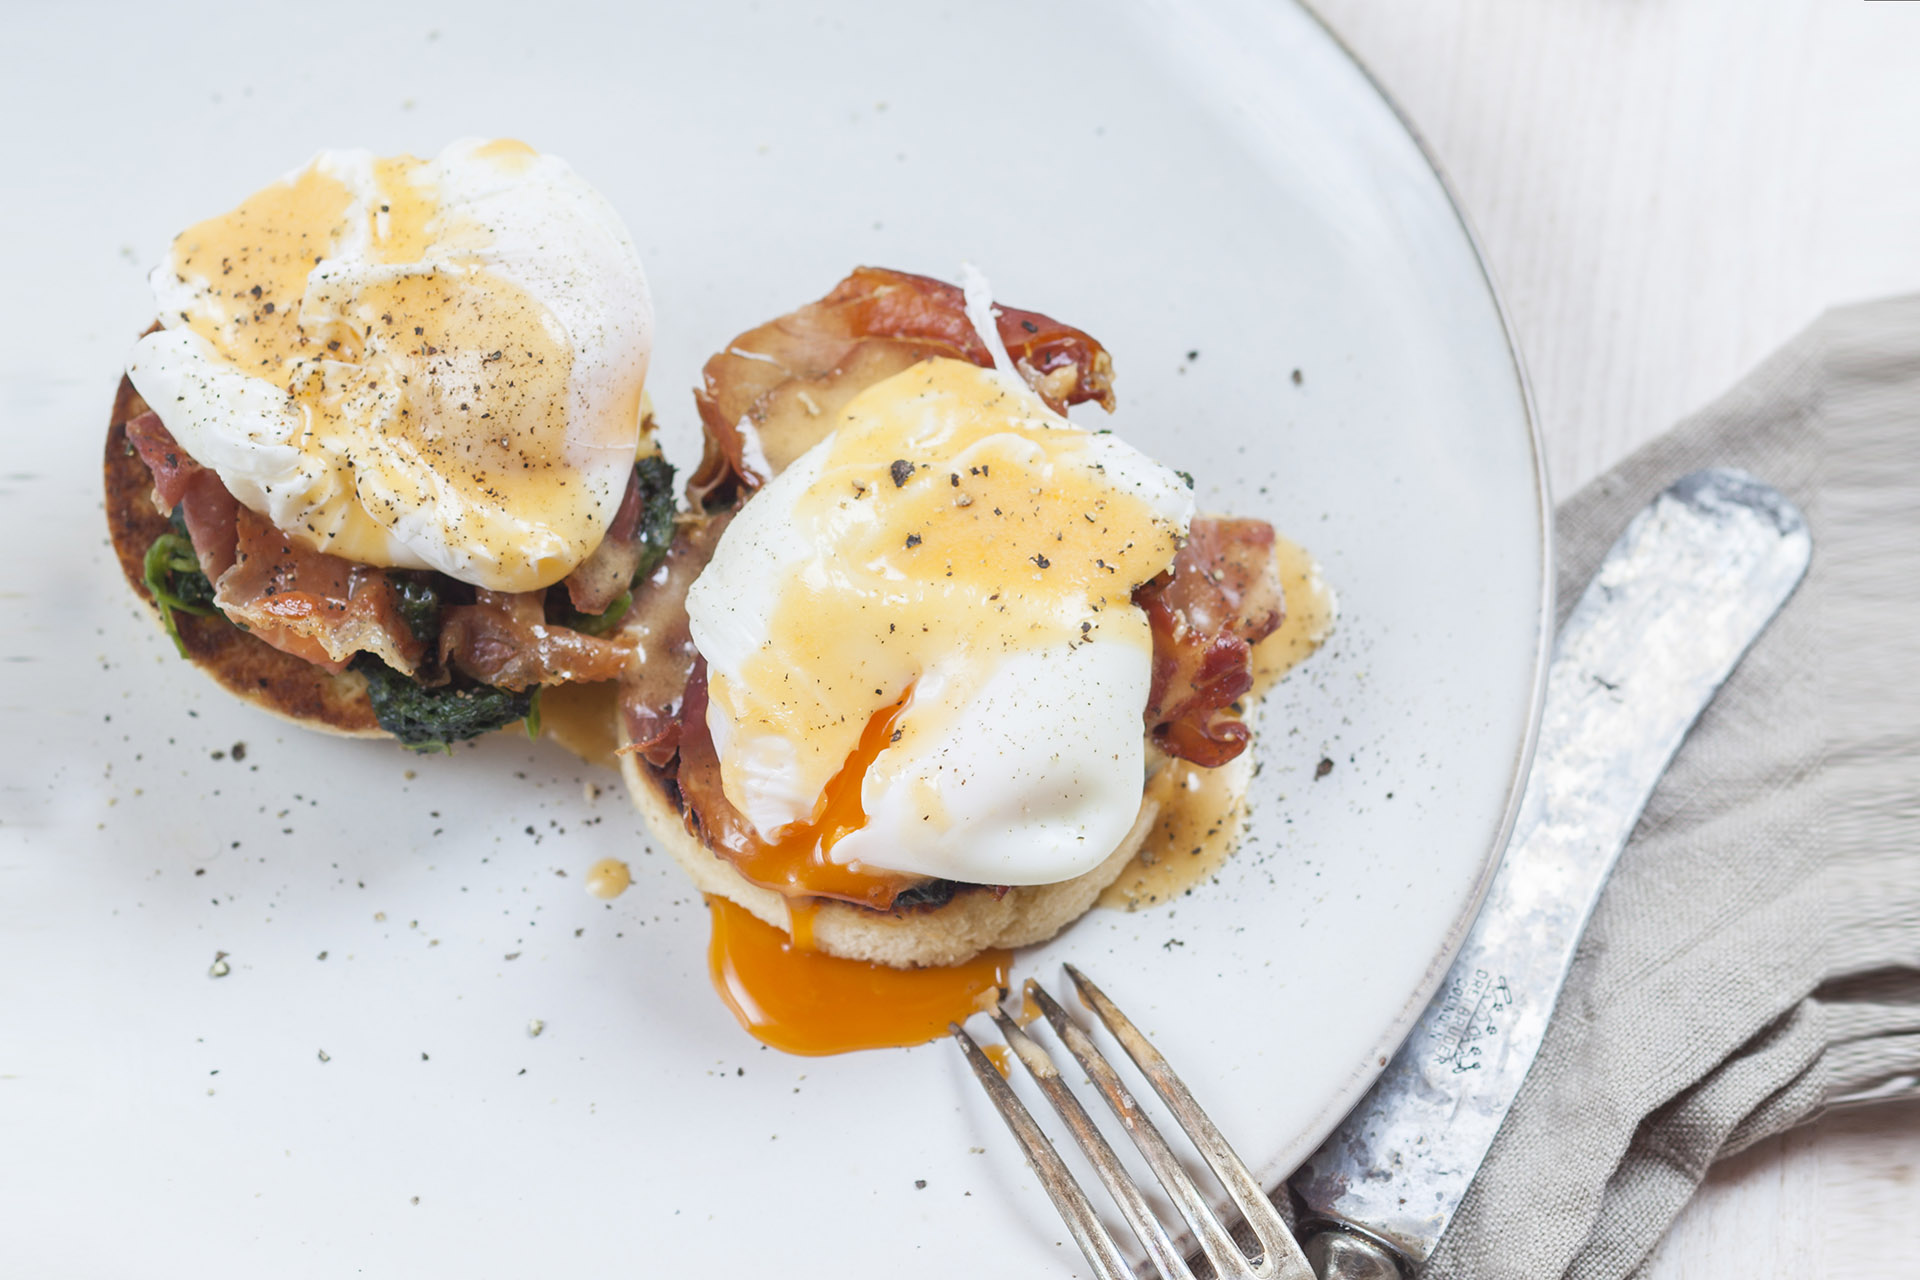 The Best Wines to Pair with Eggs